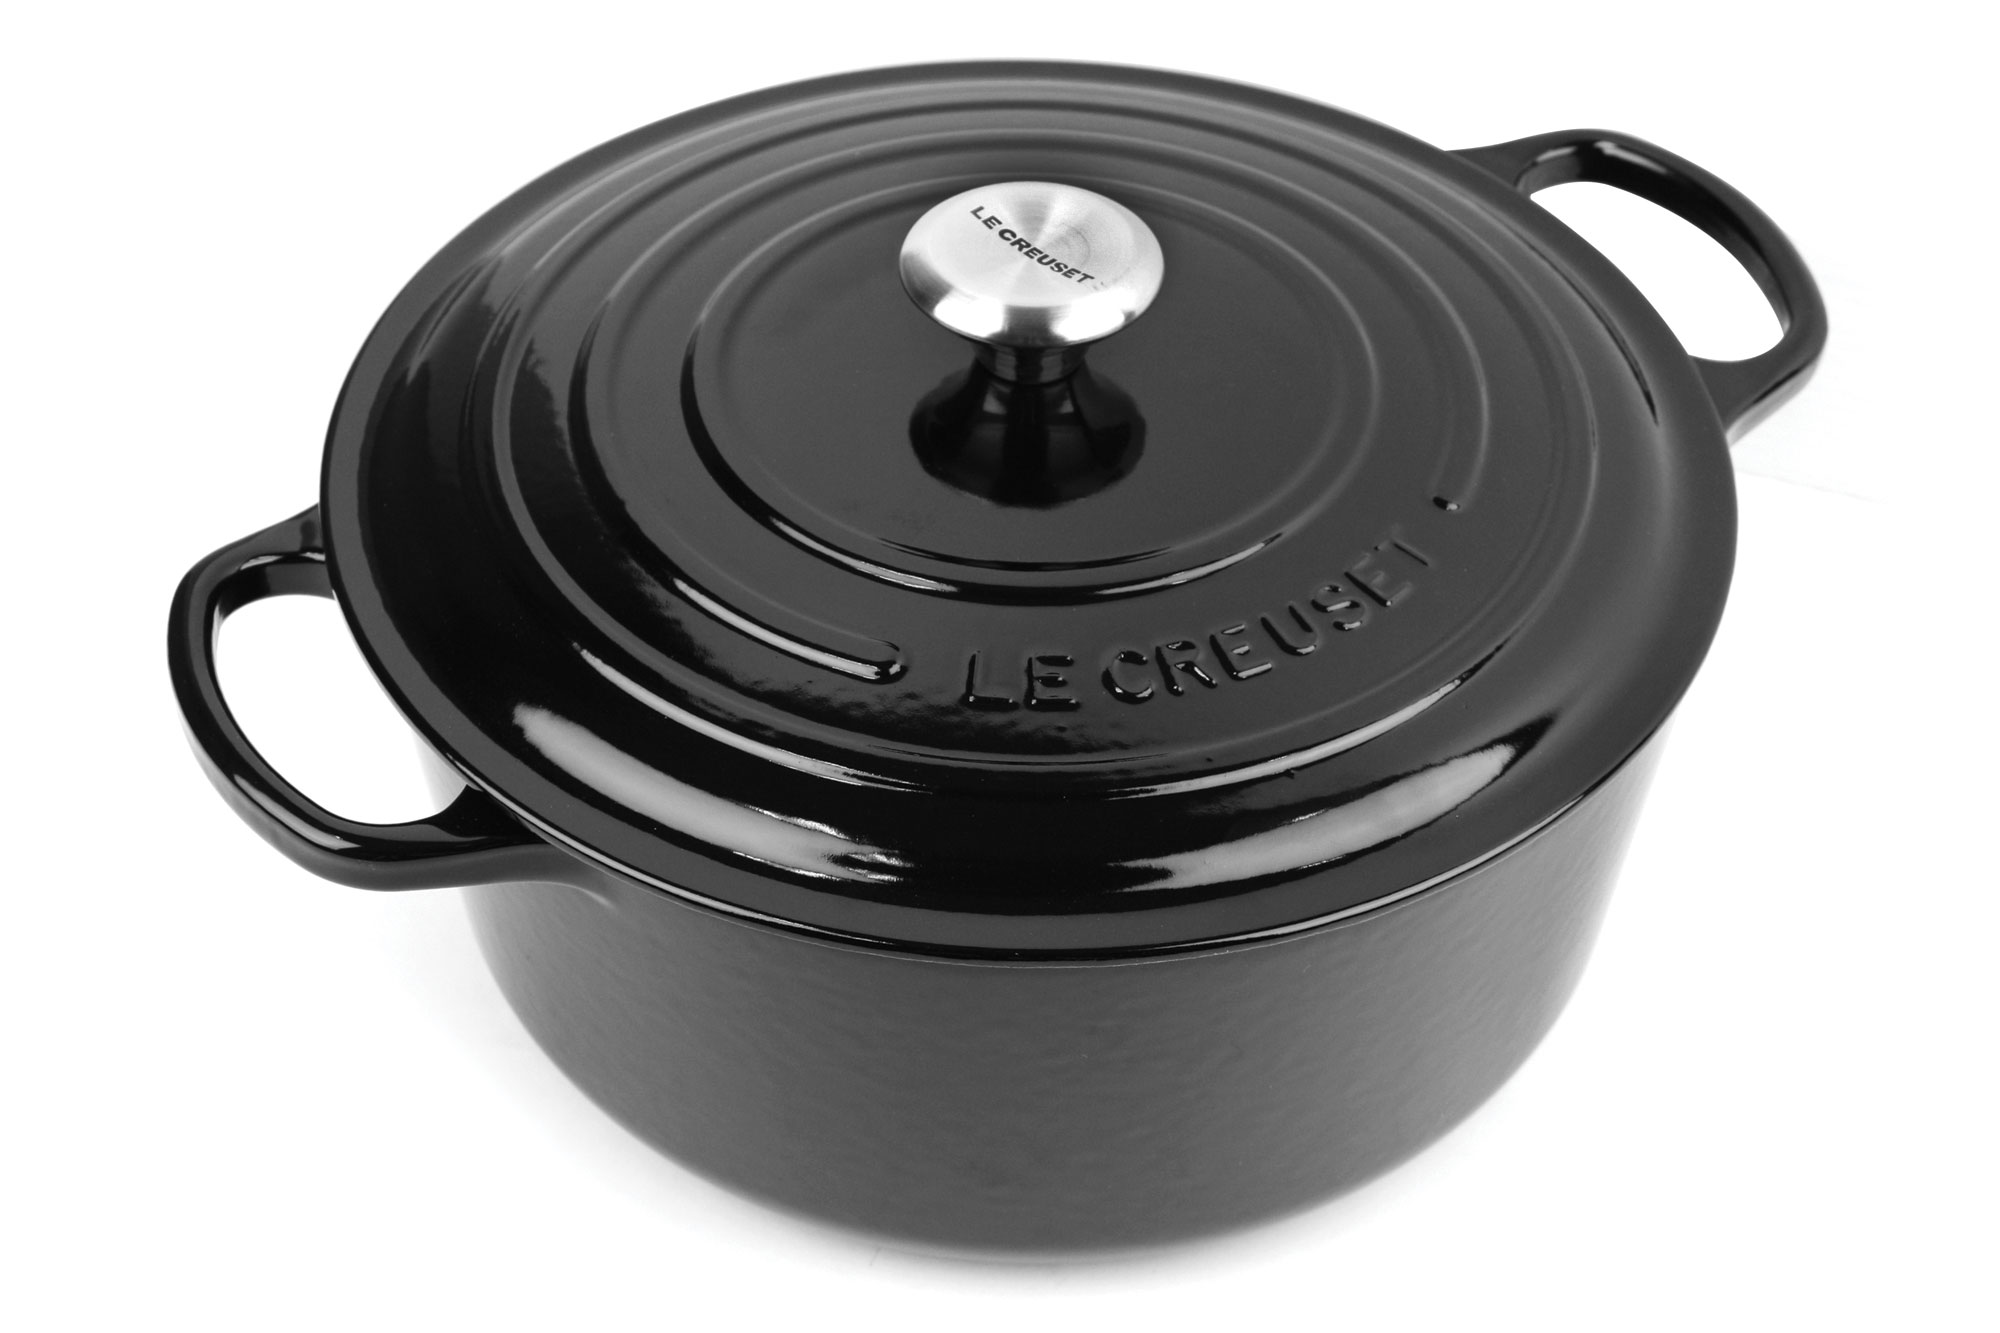 le creuset signature cast iron round dutch oven 9 quart black cutlery and more. Black Bedroom Furniture Sets. Home Design Ideas